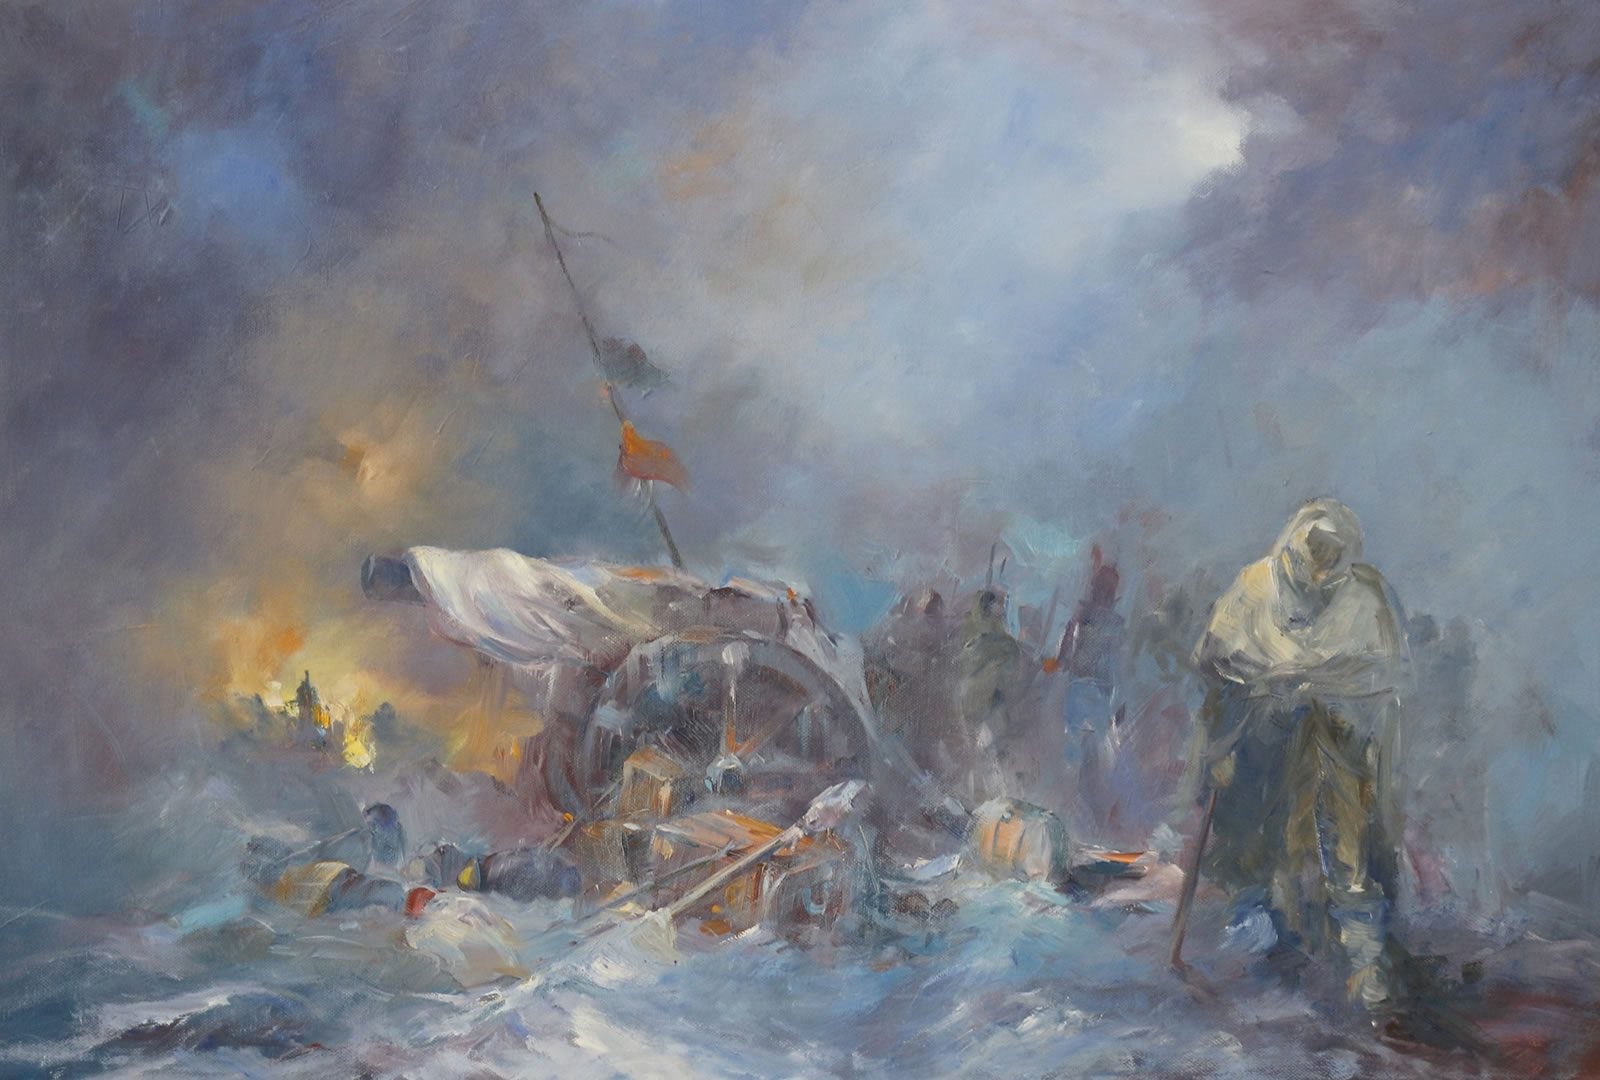 Oil painting by Stewart Taylor showing the infamous retreat from Moscow